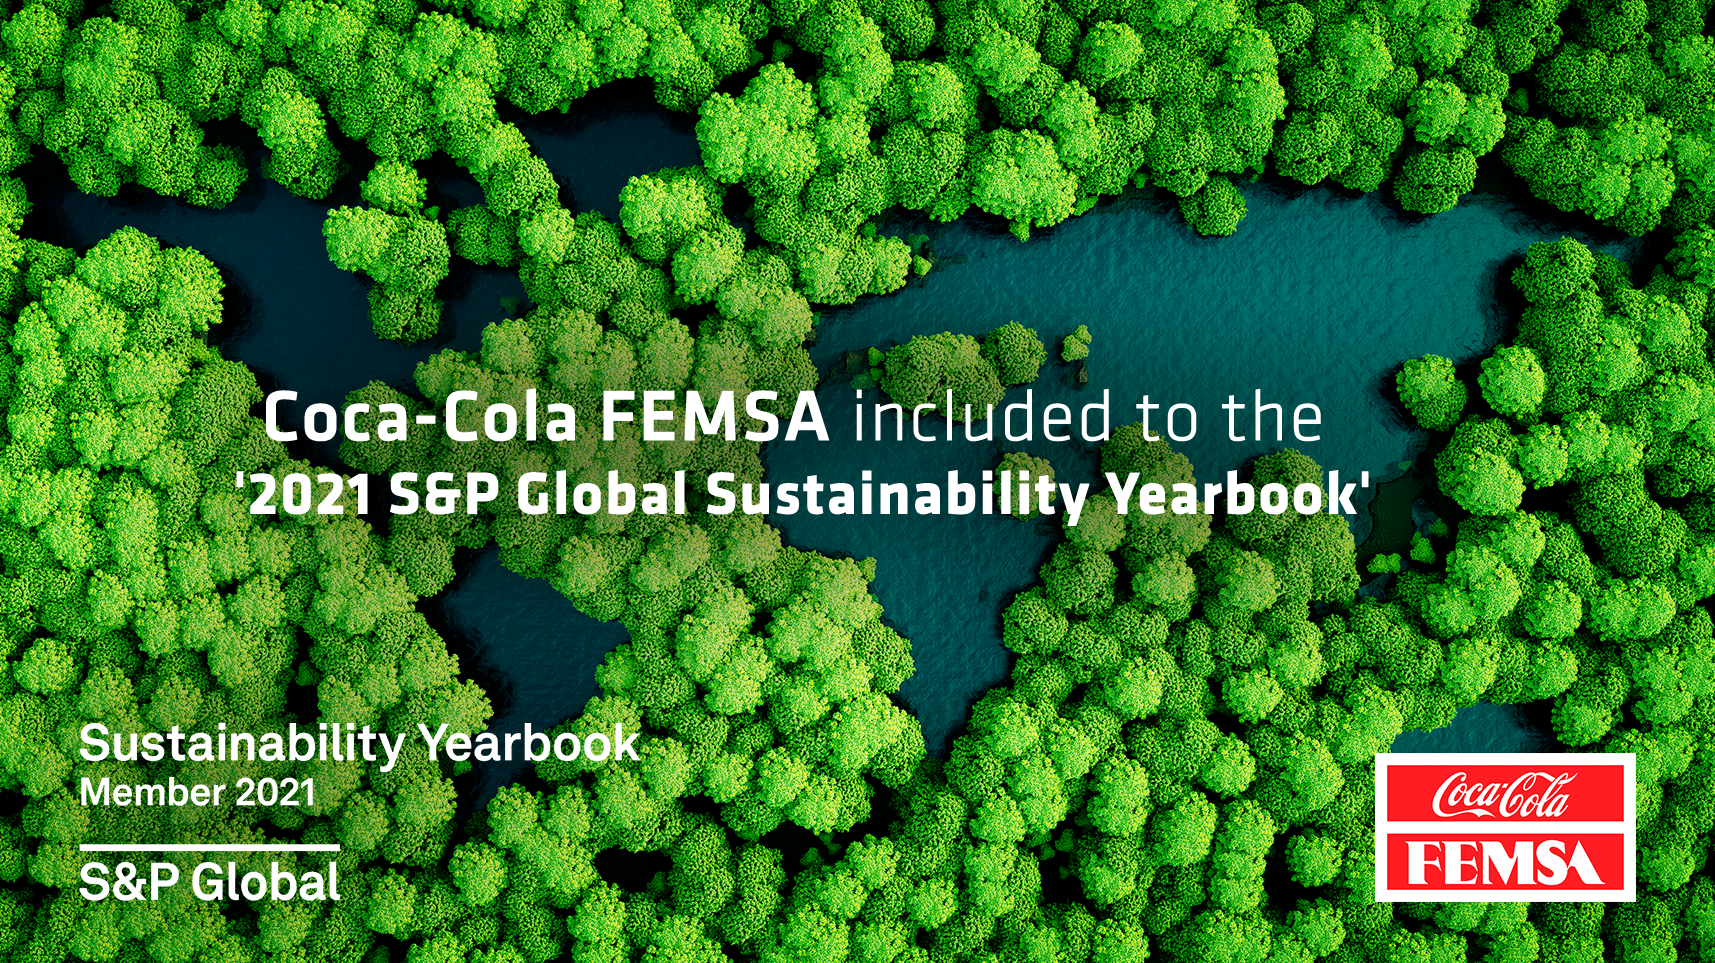 Coca-Cola FEMSA becomes member to the S&P Global 2021 Sustainability Yearbook